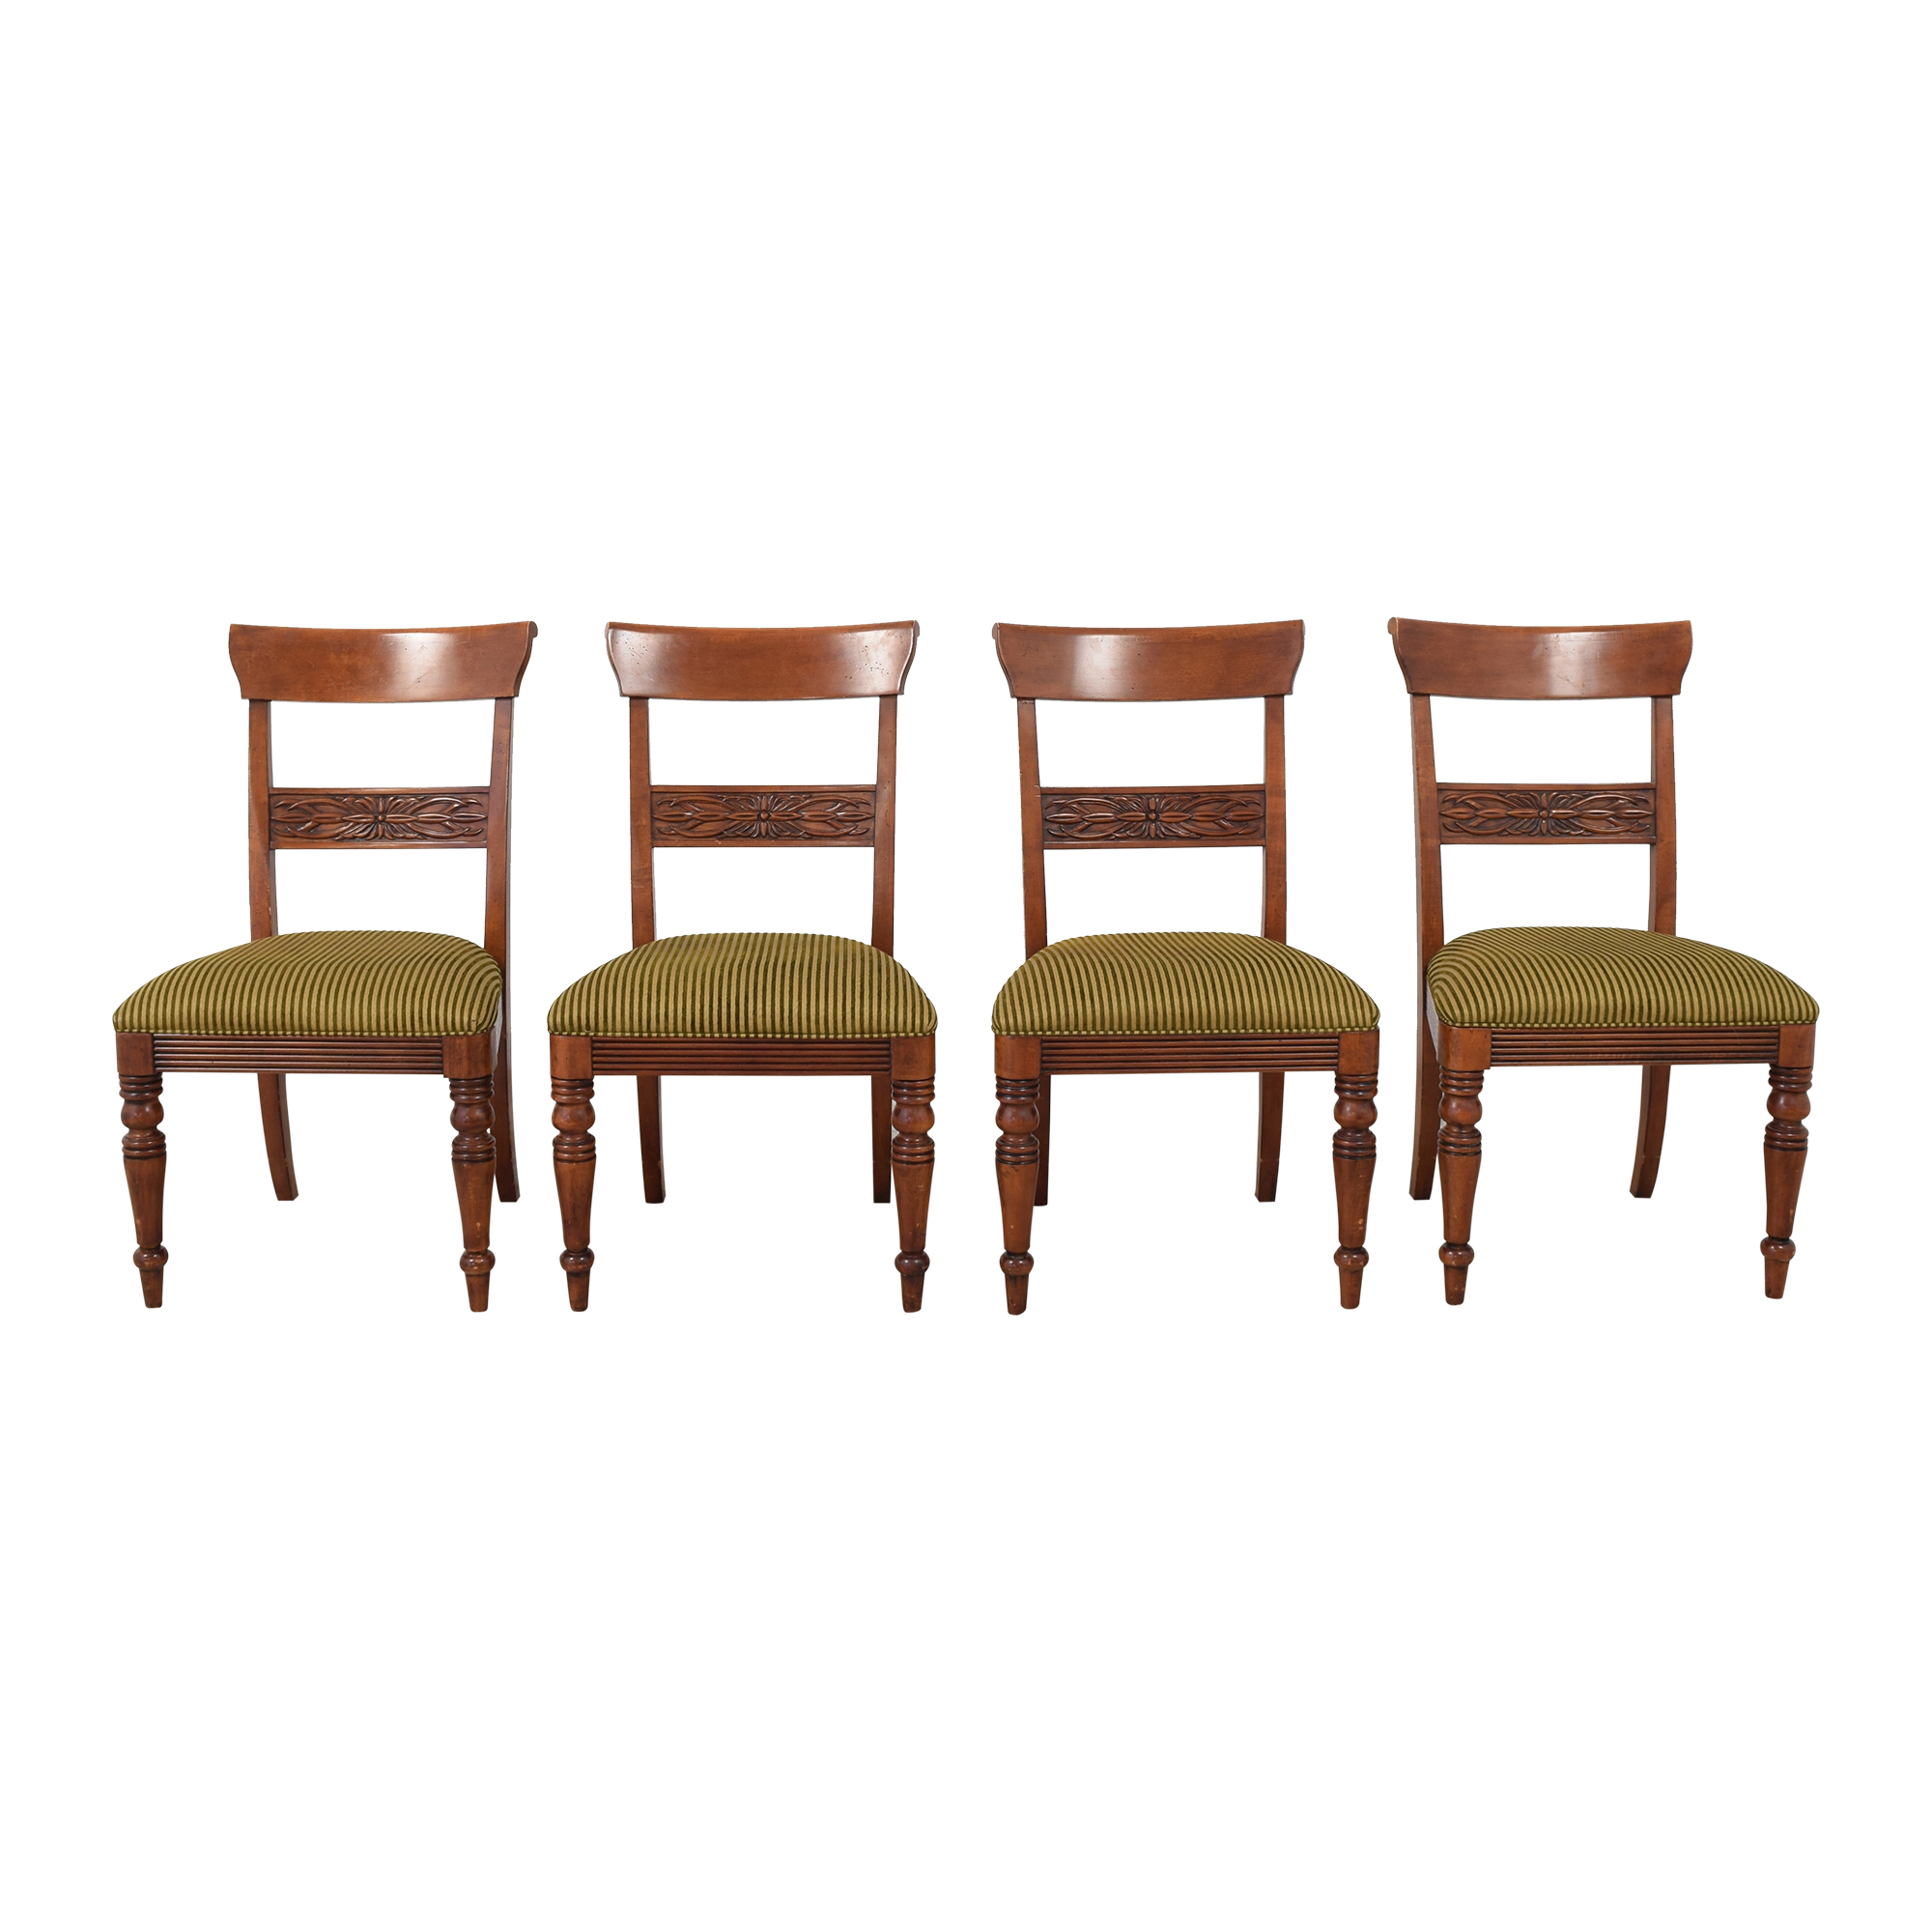 Ethan Allen Ethan Allen British Classics Dining Chairs pa